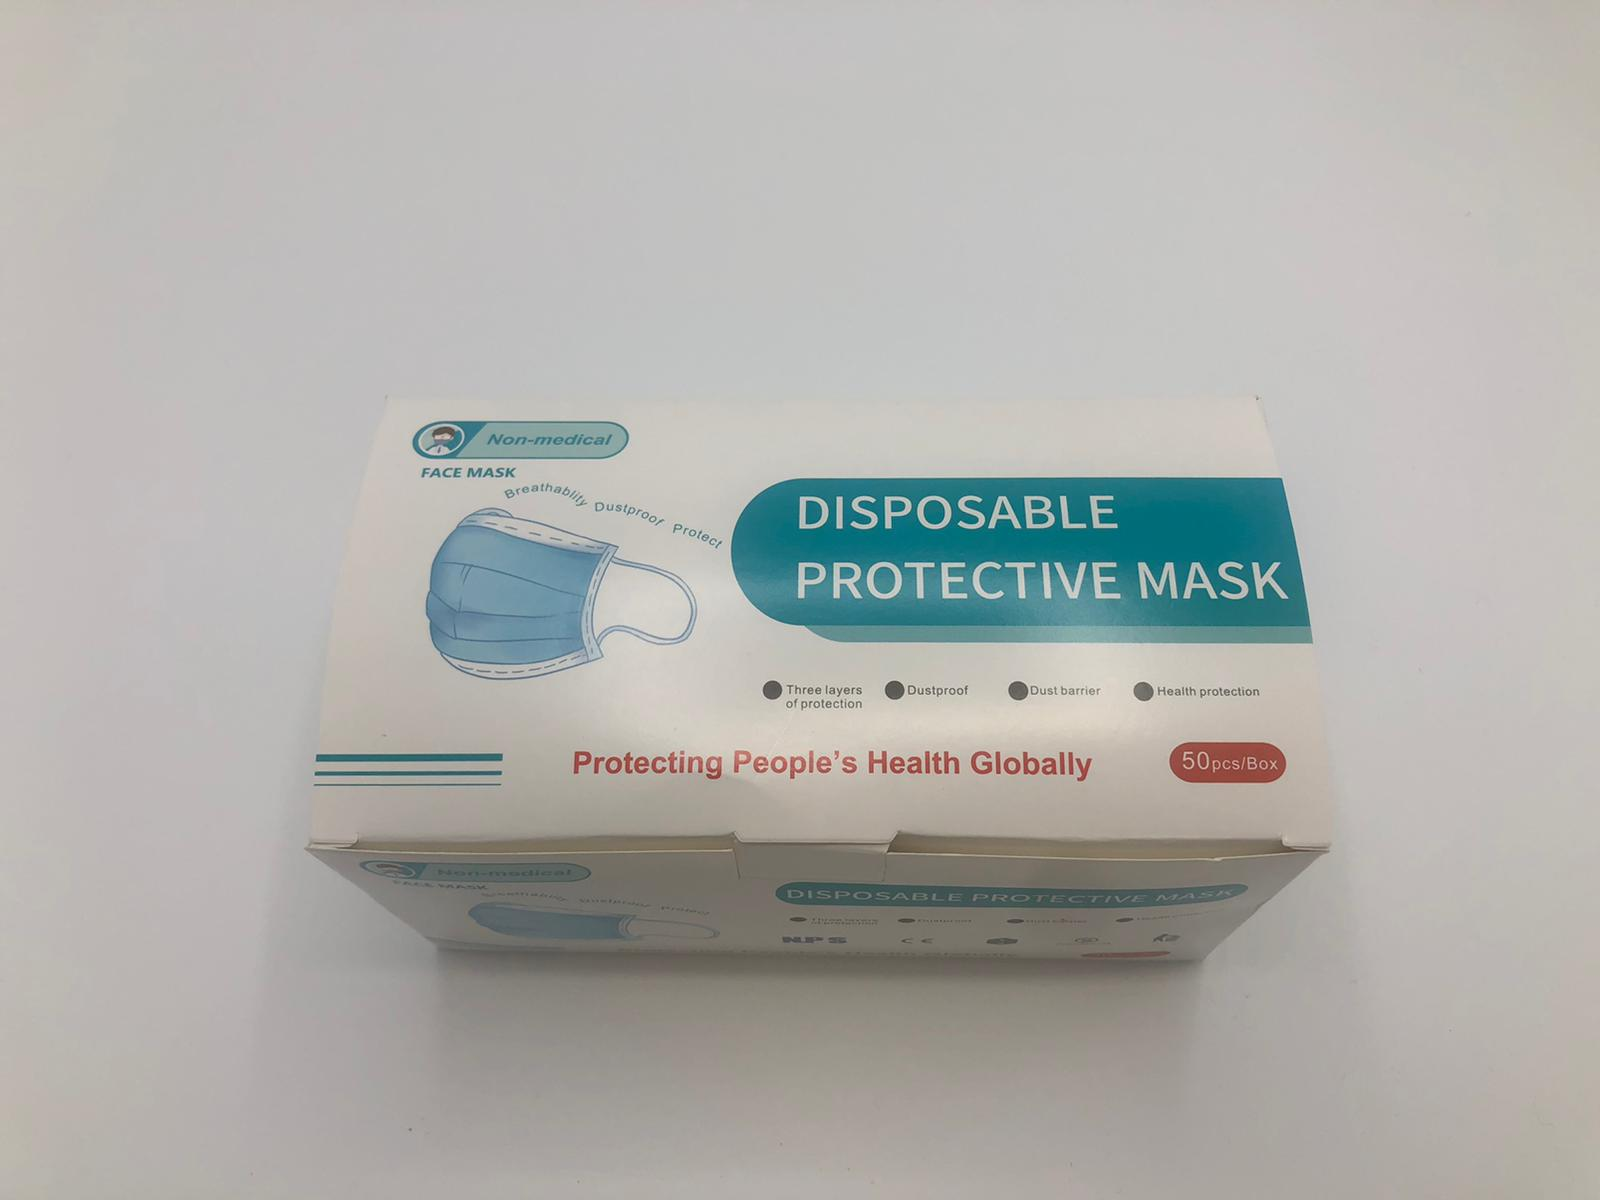 37599 - Offer 3PLY masks ready stock Europe